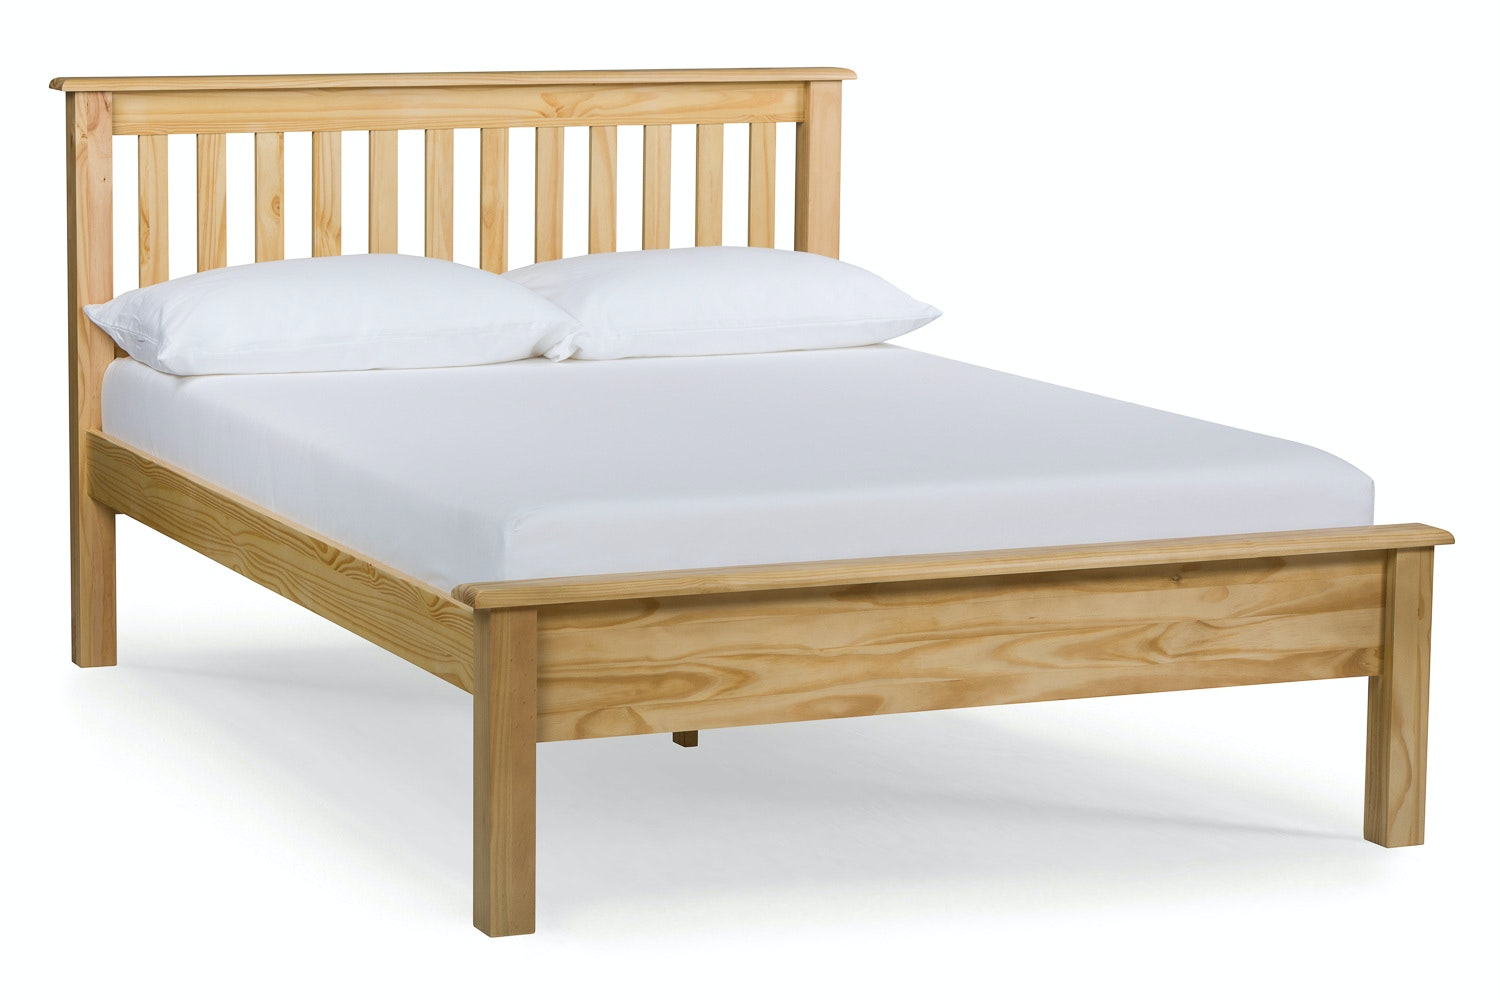 Shaker Small Double Bed Frame | 4ft